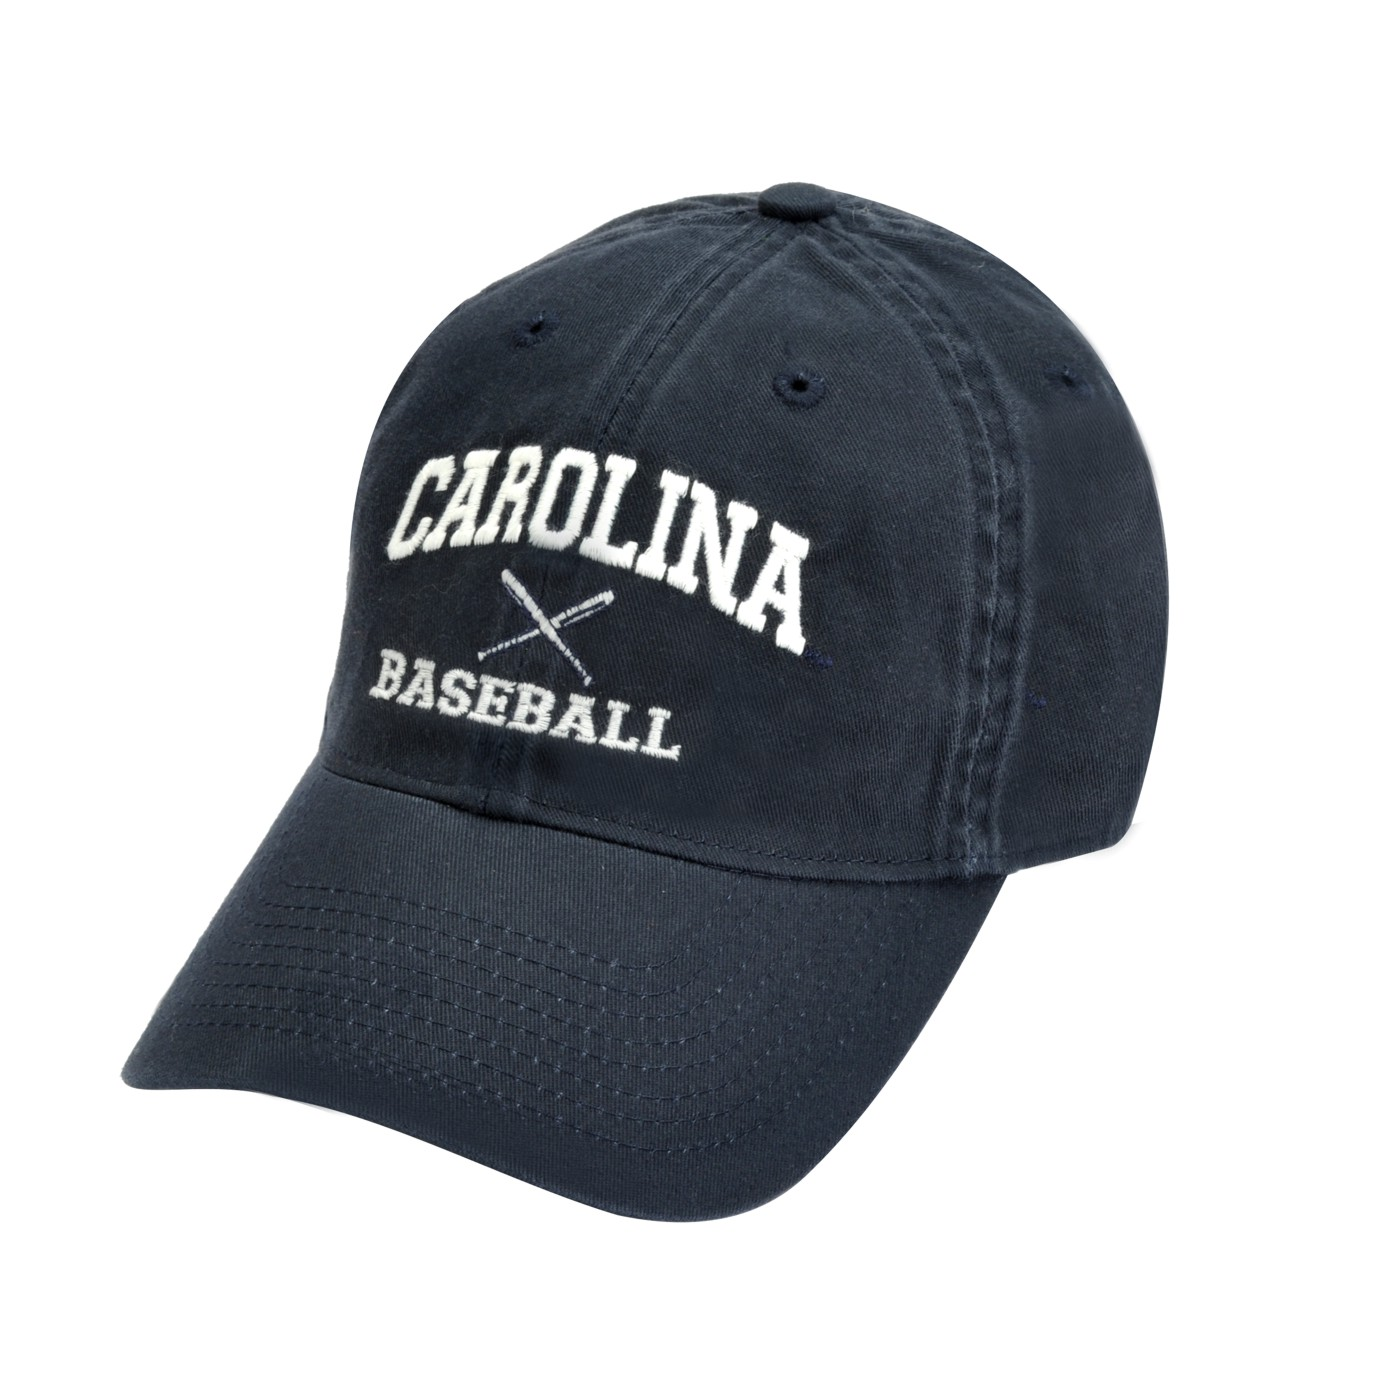 johnny t shirt carolina tar heels baseball sport